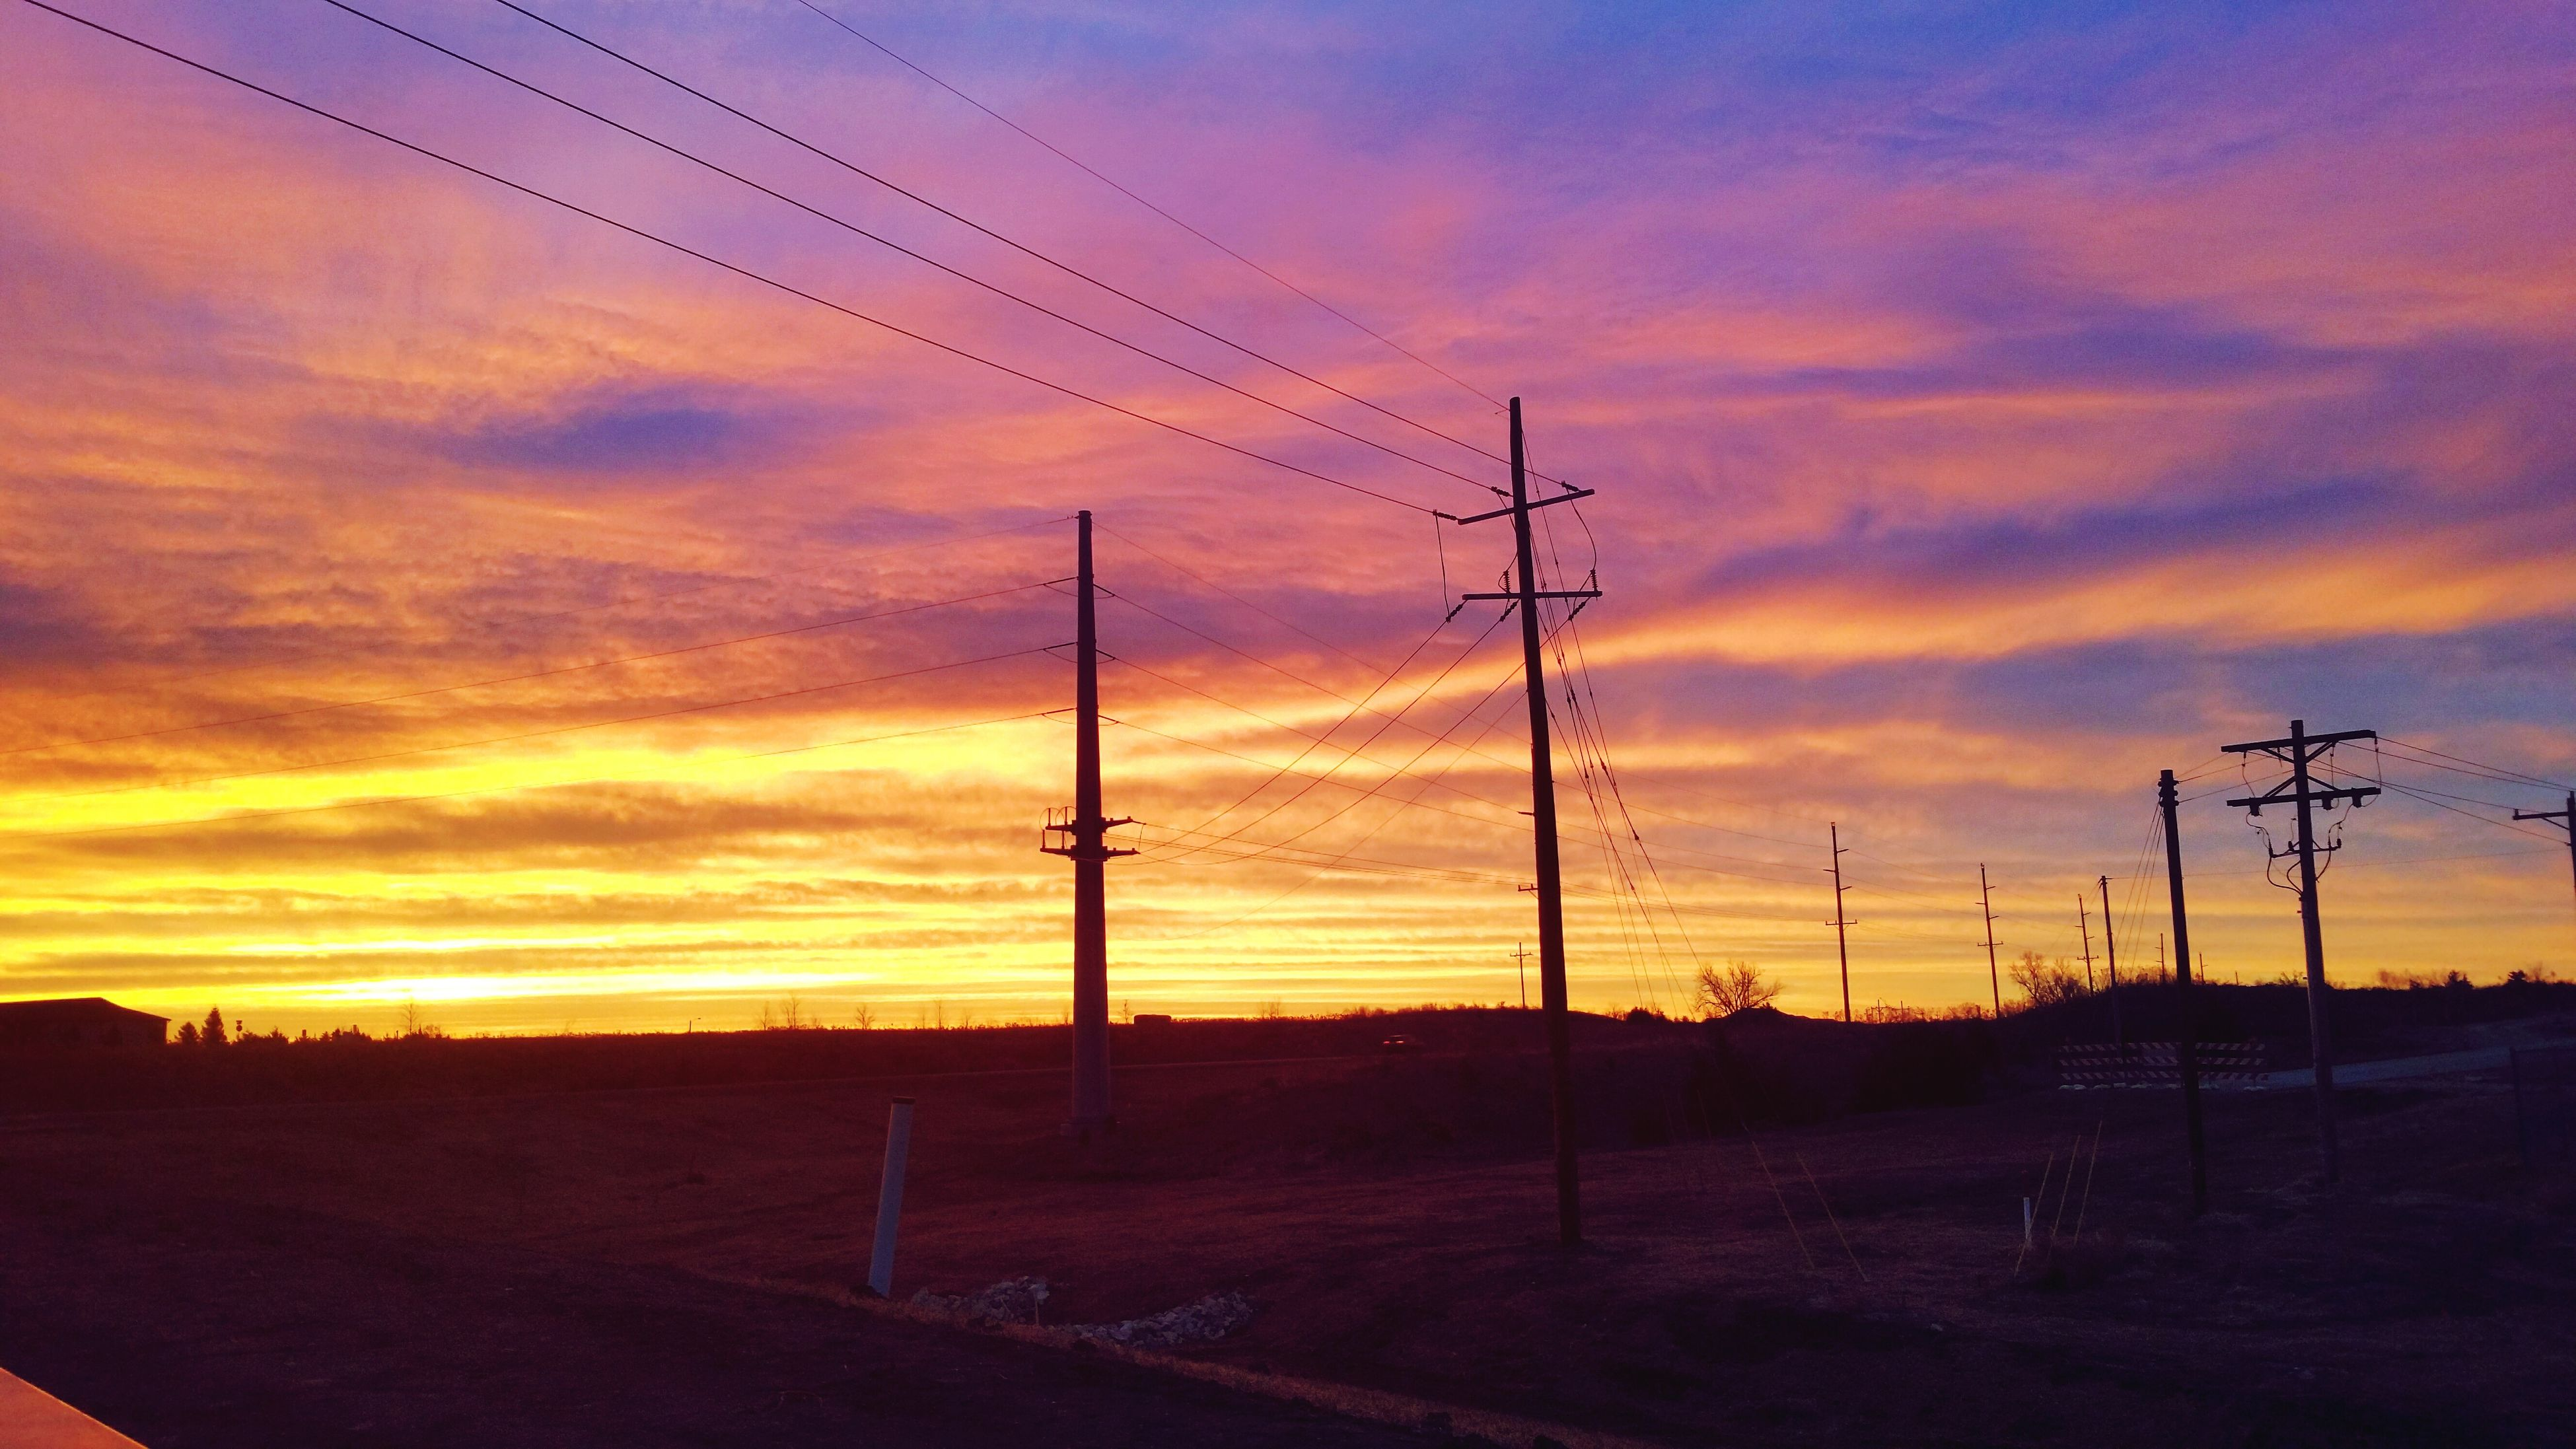 sunset, orange color, sky, silhouette, landscape, cloud - sky, scenics, beauty in nature, cloud, tranquility, bird, field, dramatic sky, nature, tranquil scene, electricity pylon, animal themes, fuel and power generation, power line, outdoors